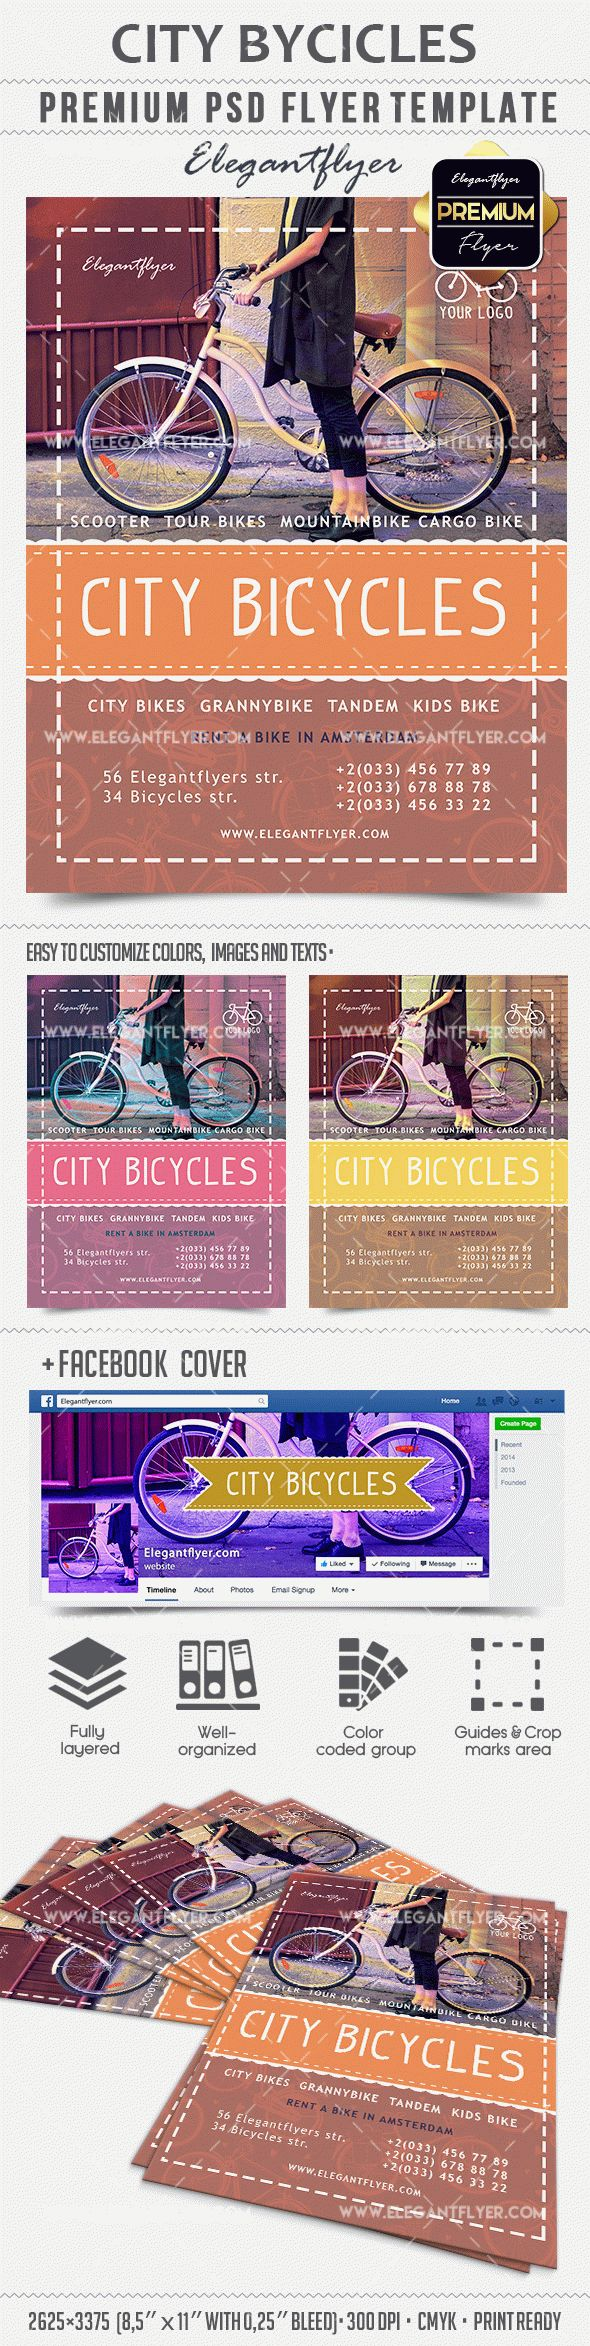 City Bicycles Flyer PSD Template